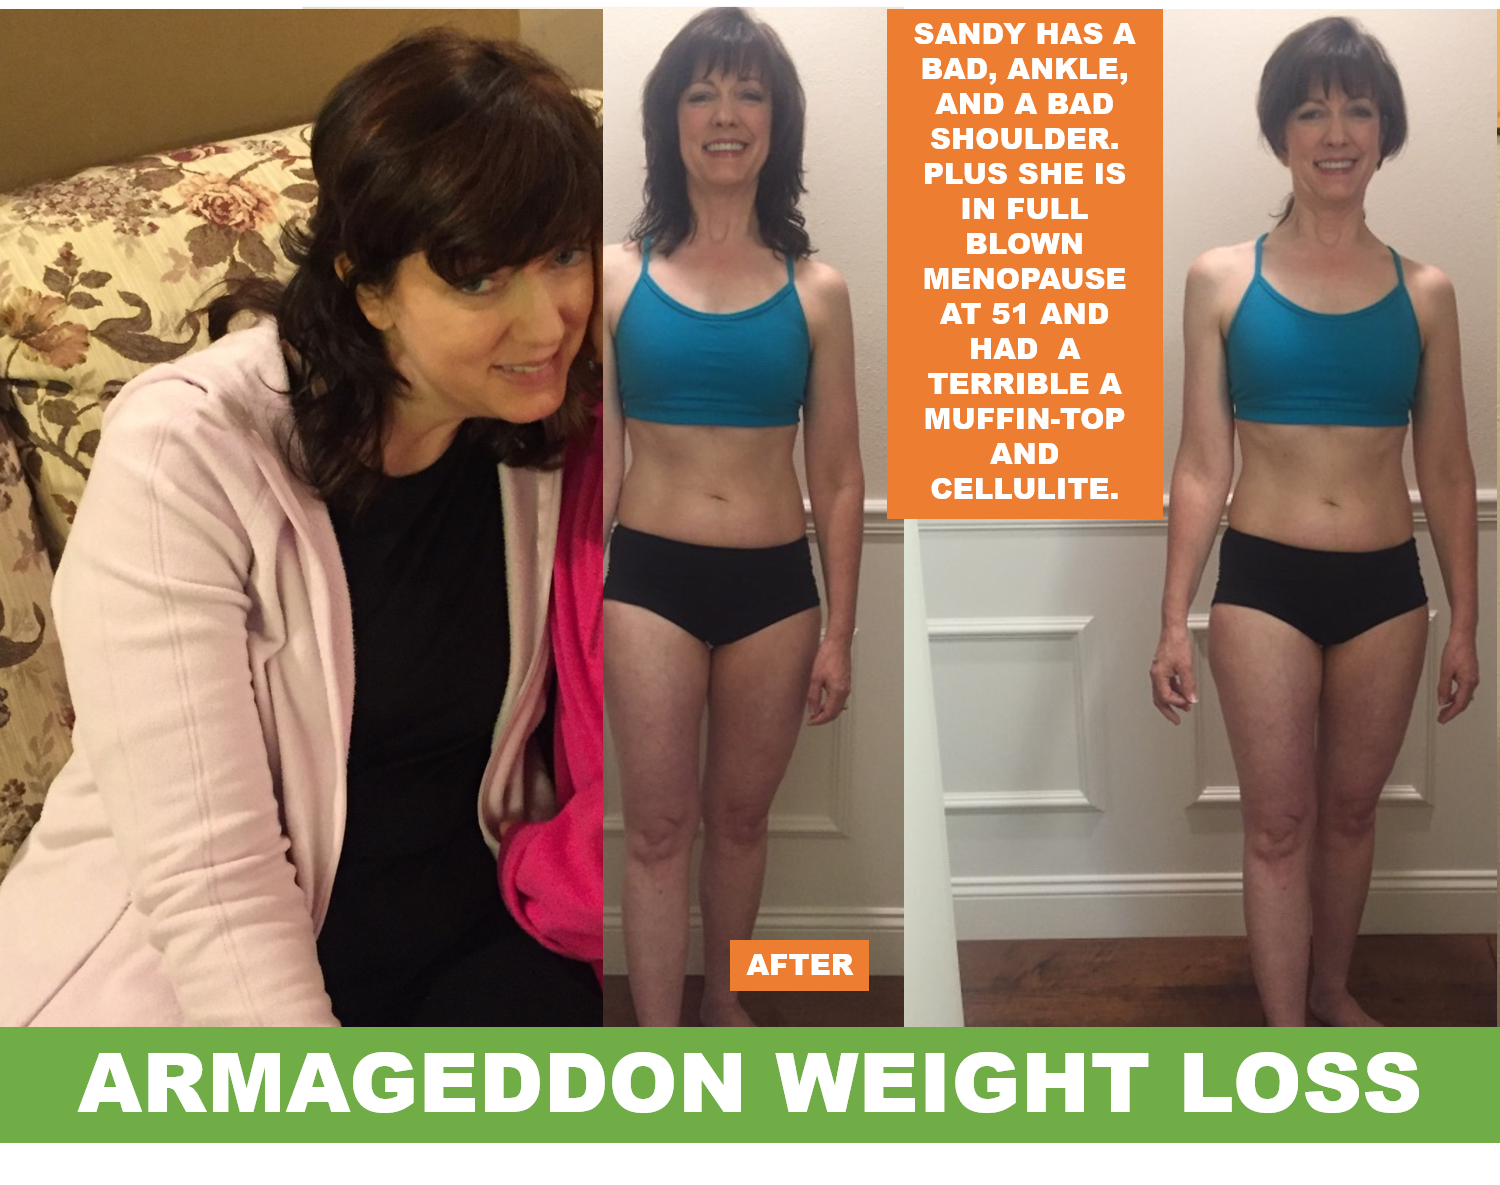 sandra-powers-armageddon-weight-loss-program-best-weight-loss-dvd-for-women-best-exercise-program-for-people-suffering-from-joint-injuires-best-exercise-program-for-menopause-203